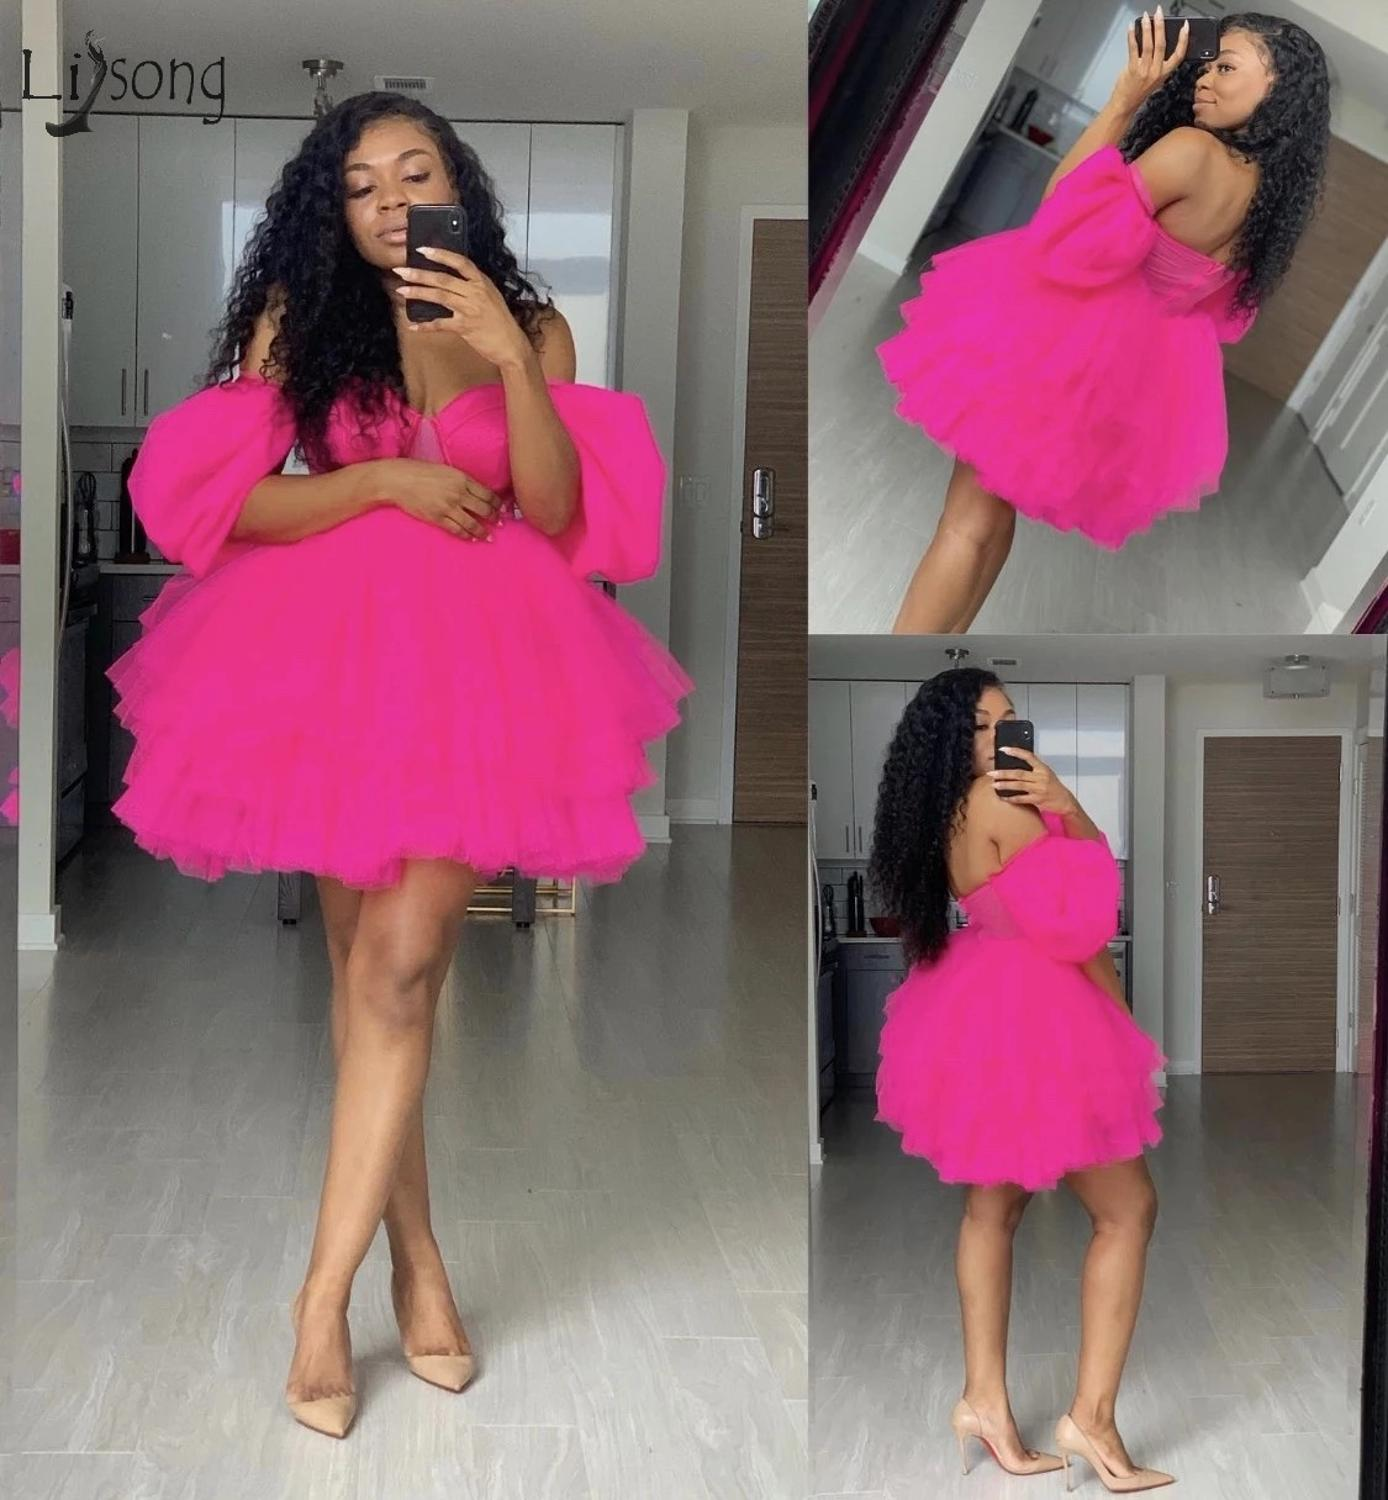 Trendy Hot Pink Puffy Tutu Short Cocktail Dresses 2019 Off The Shoulder Sexy Homecoming Dresses Puffy Party Dress Plus Size